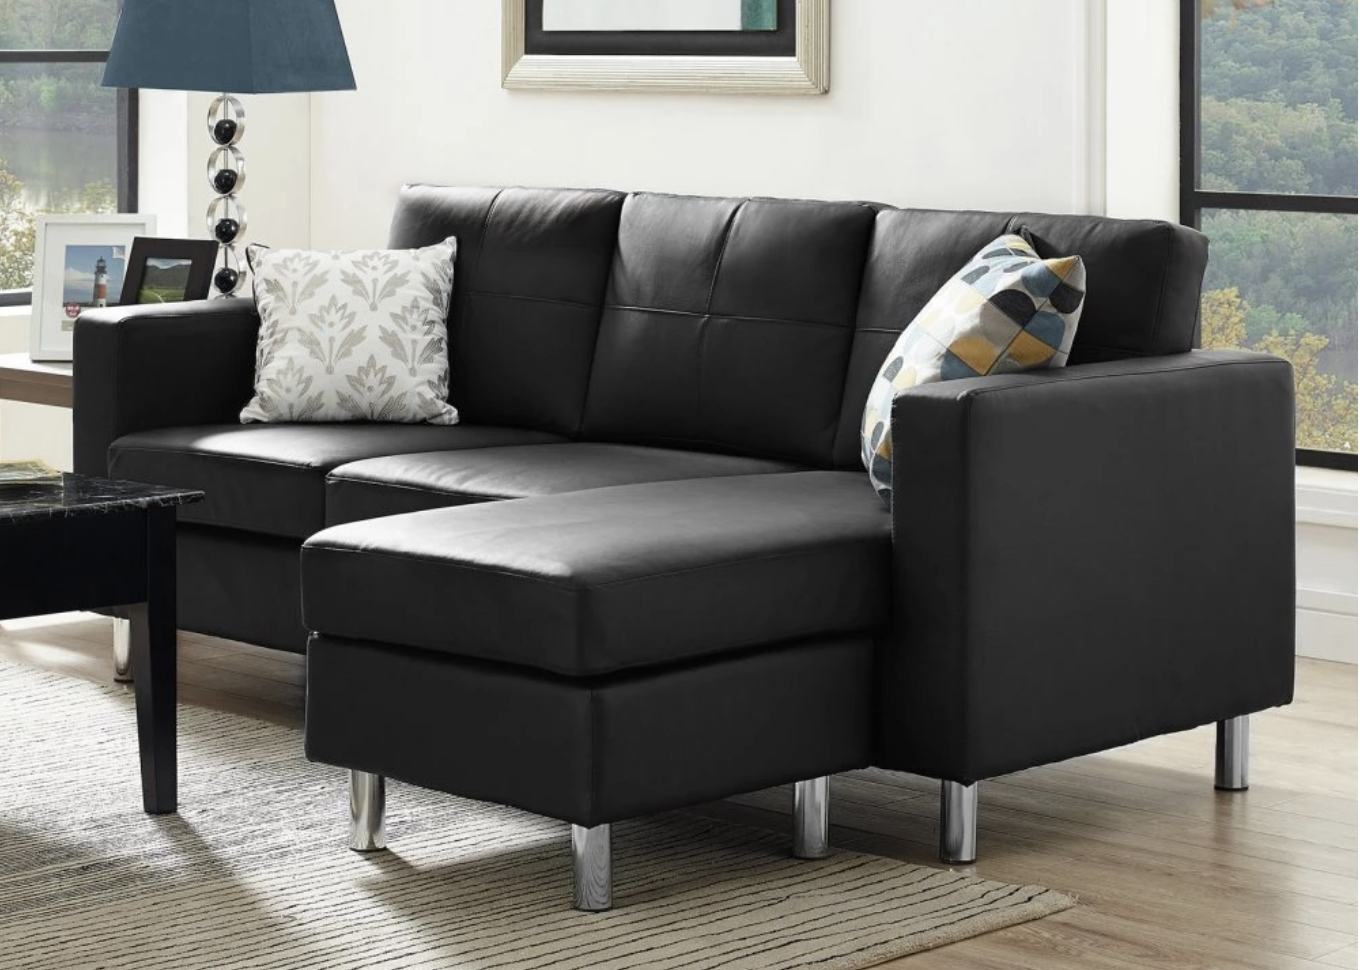 Trendy Inexpensive Sectional Sofas For Small Spaces Inside 75 Modern Sectional Sofas For Small Spaces (2018) (View 3 of 20)